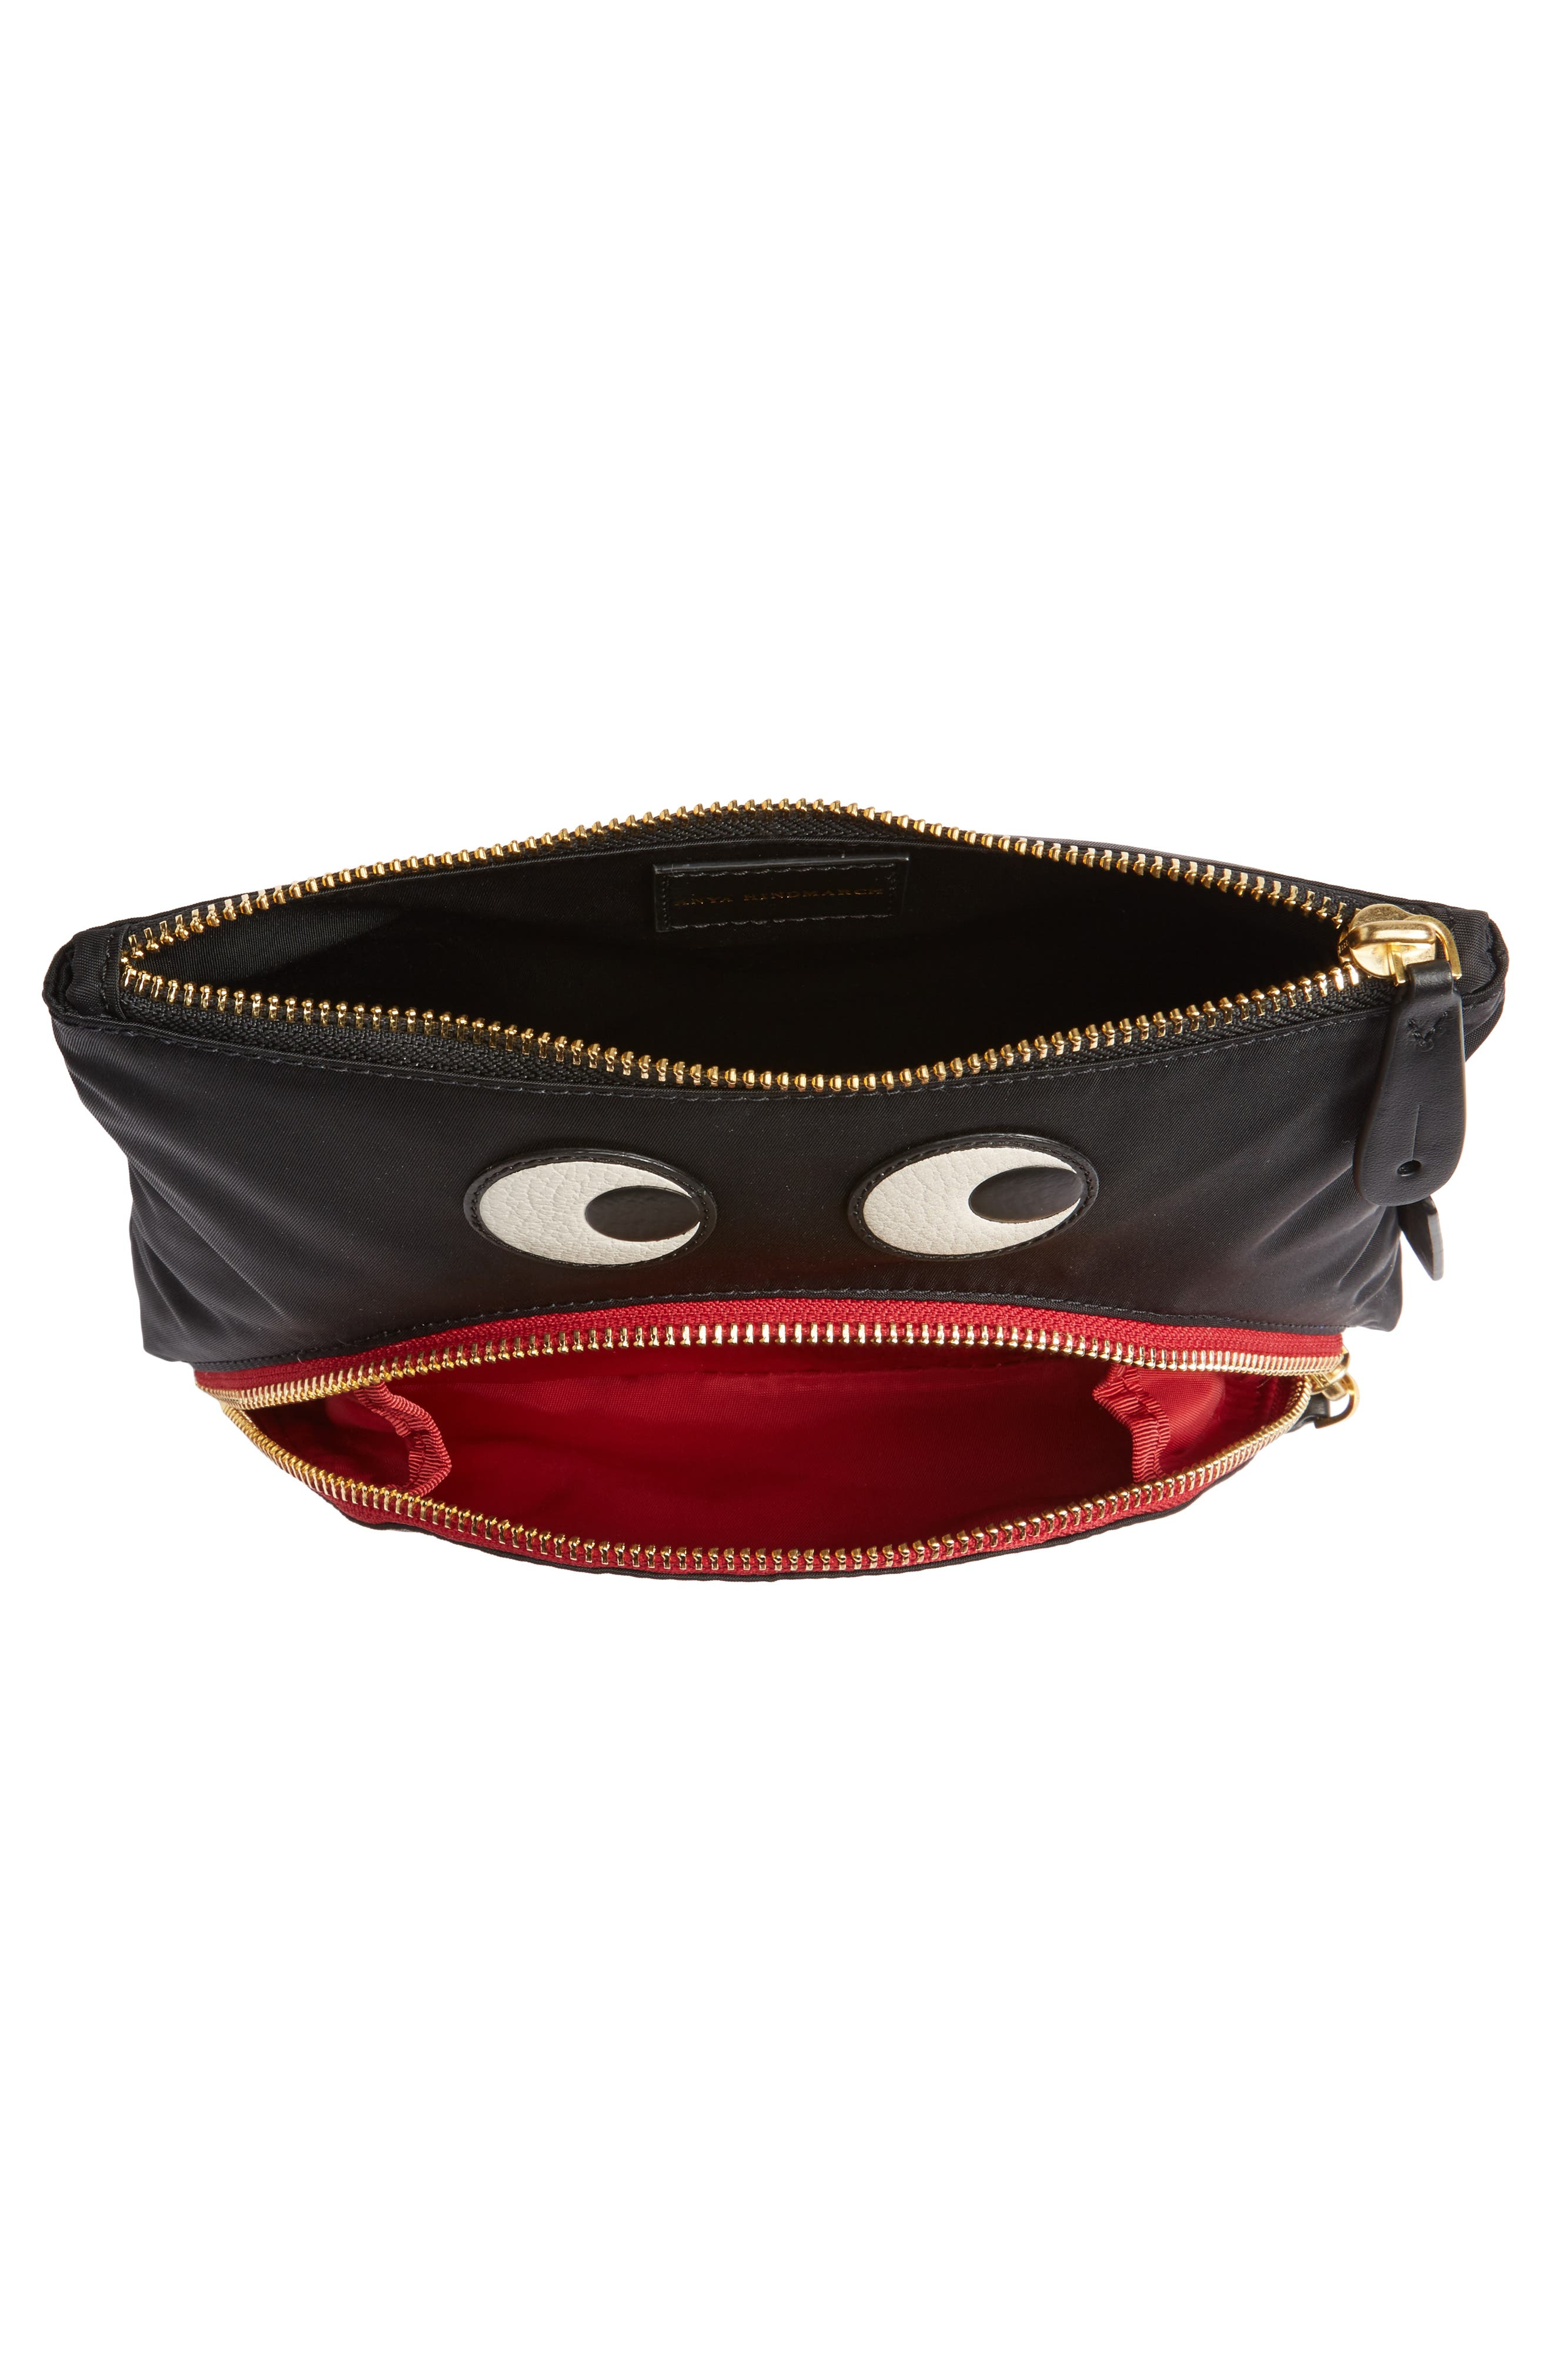 Happy Eyes Nylon Pouch,                             Alternate thumbnail 4, color,                             001